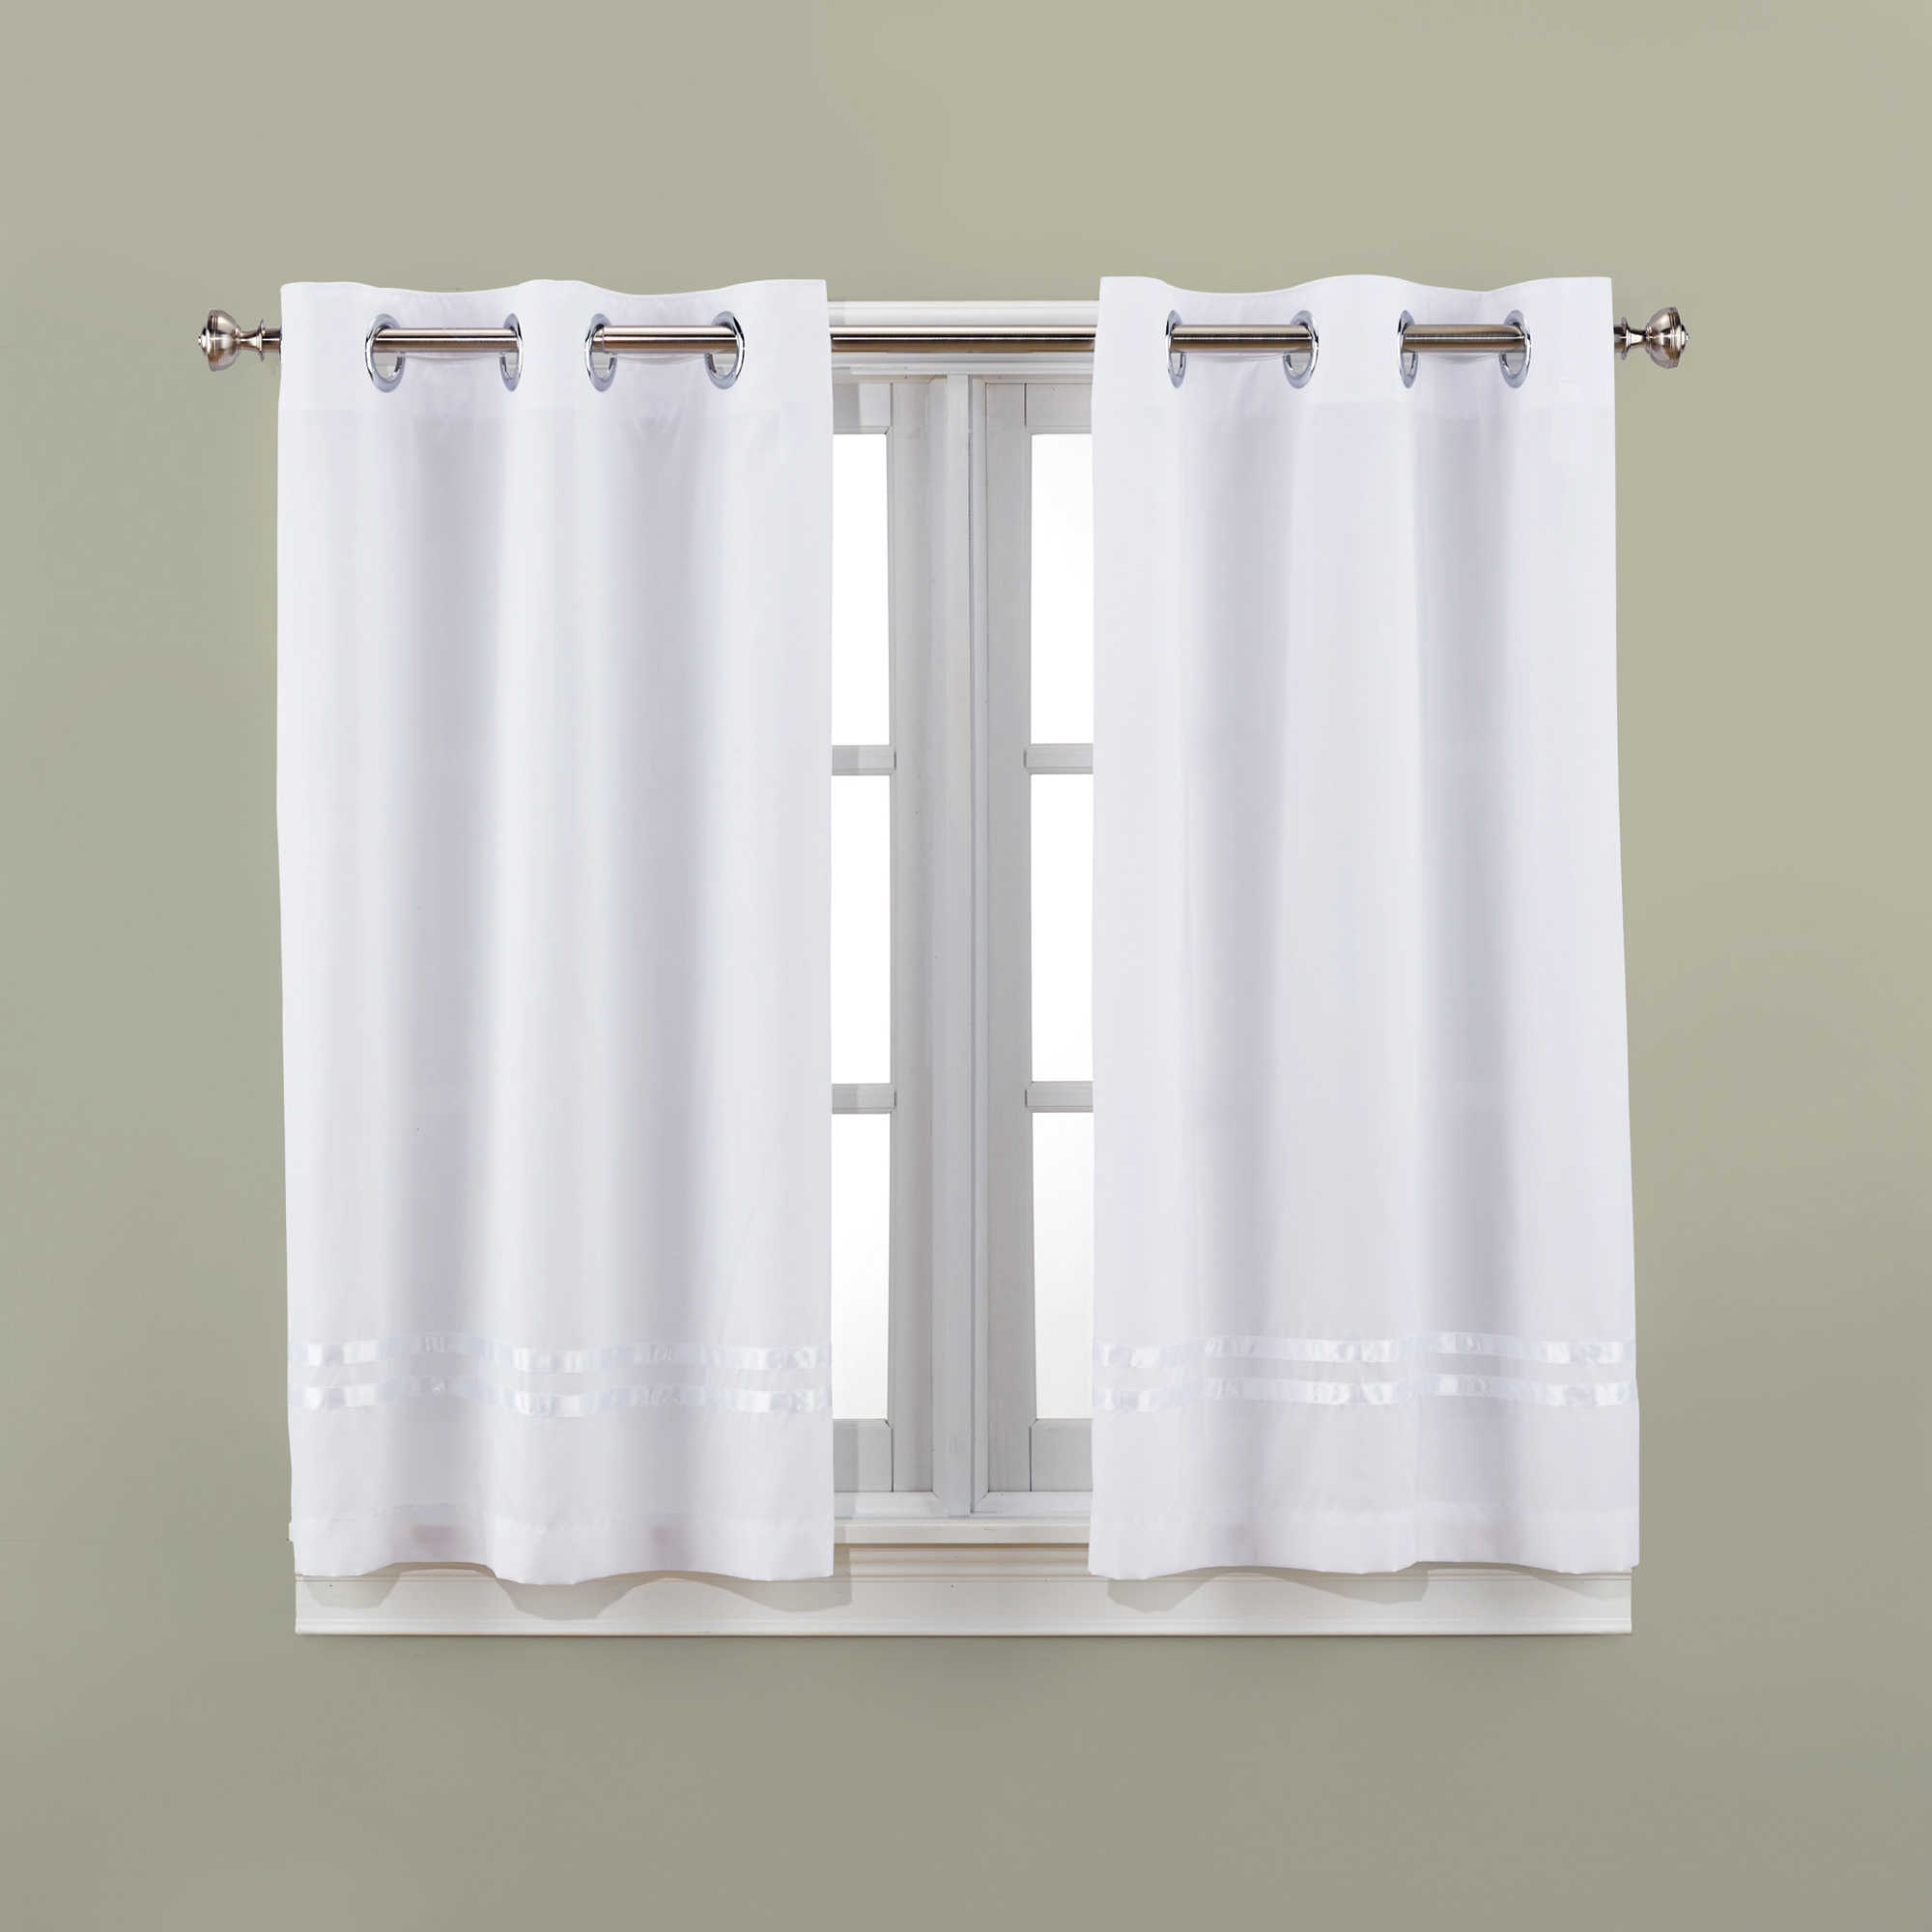 Hooklessreg Escape 45 Inch Bath Window Curtain Panels